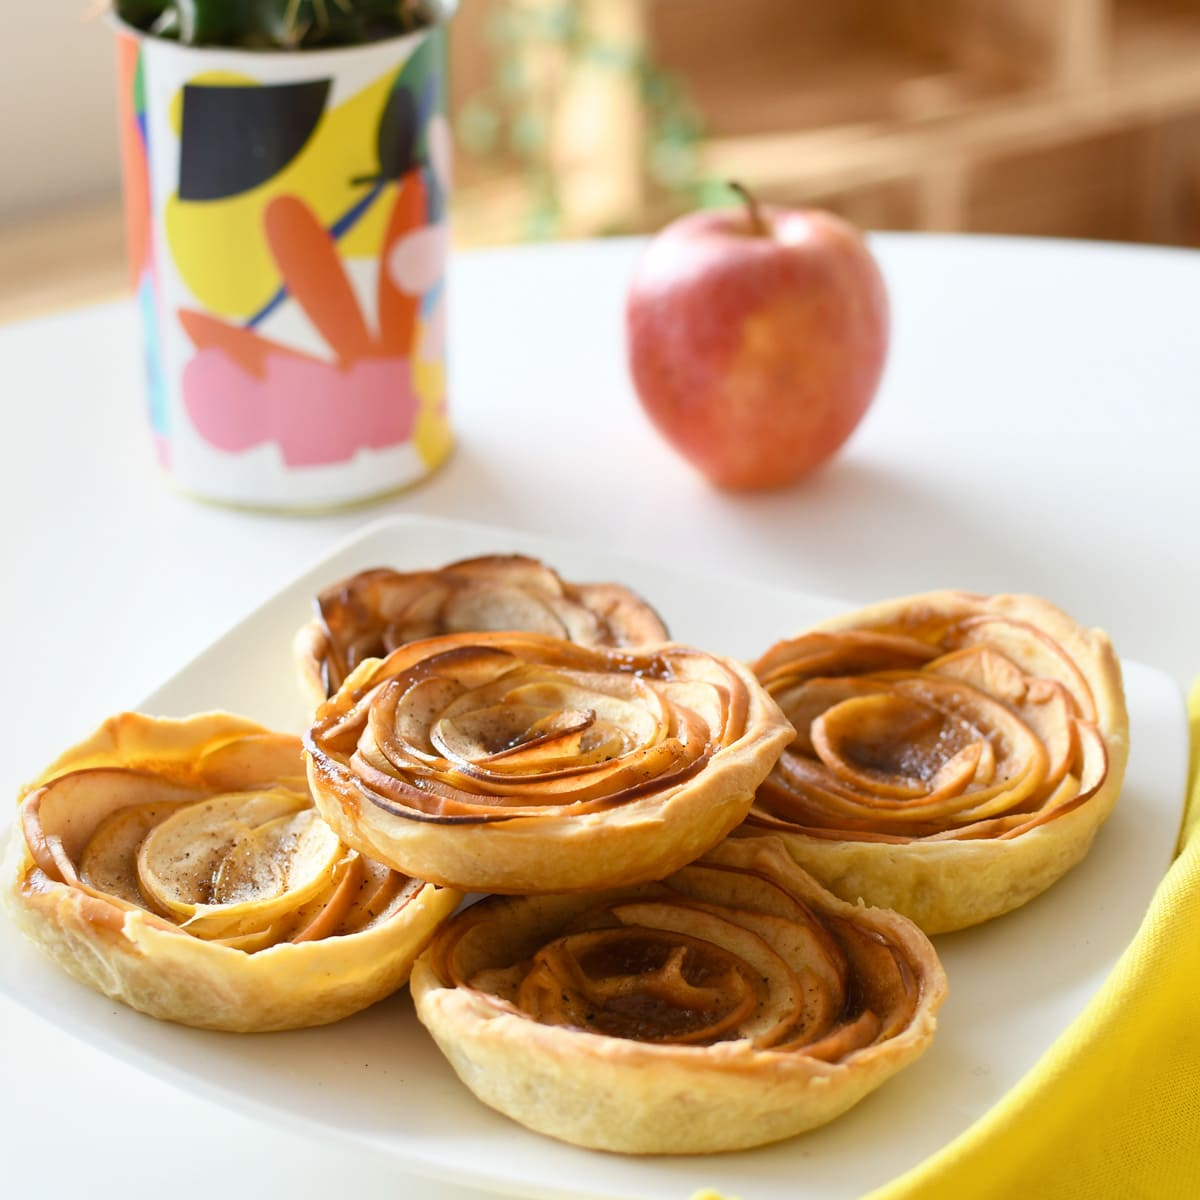 Delicious apple and caramel mini pies for the kids' tea time! Very easy to prepare in autumn.